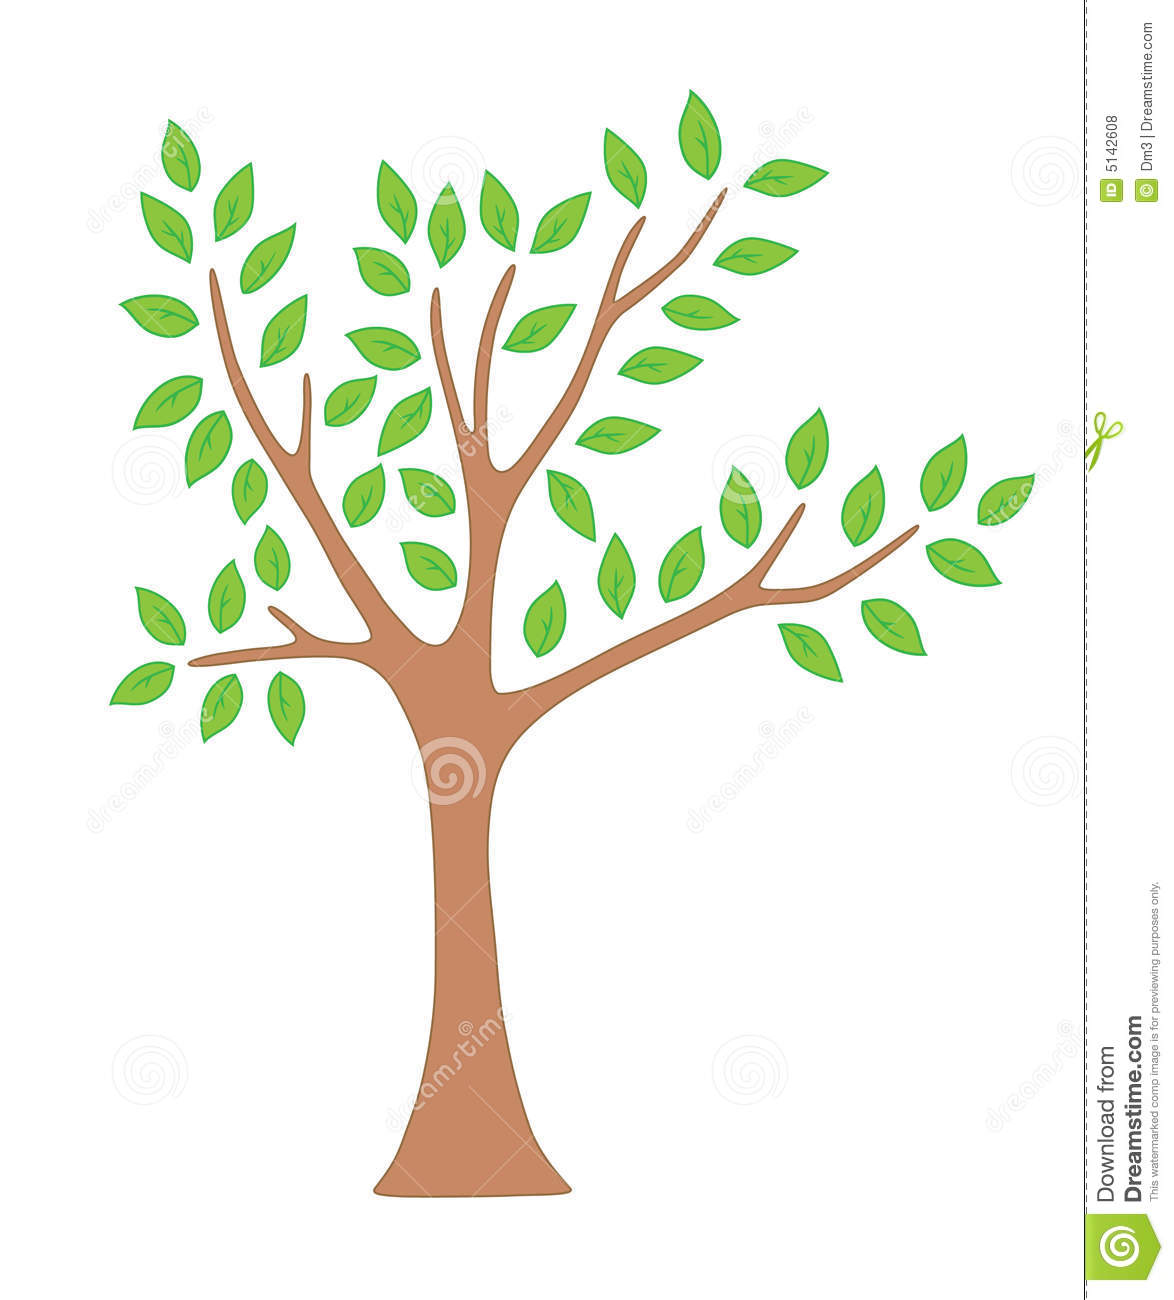 Barren clipart autumn tree Clip Clipart Images spring%20tree%20clipart Free